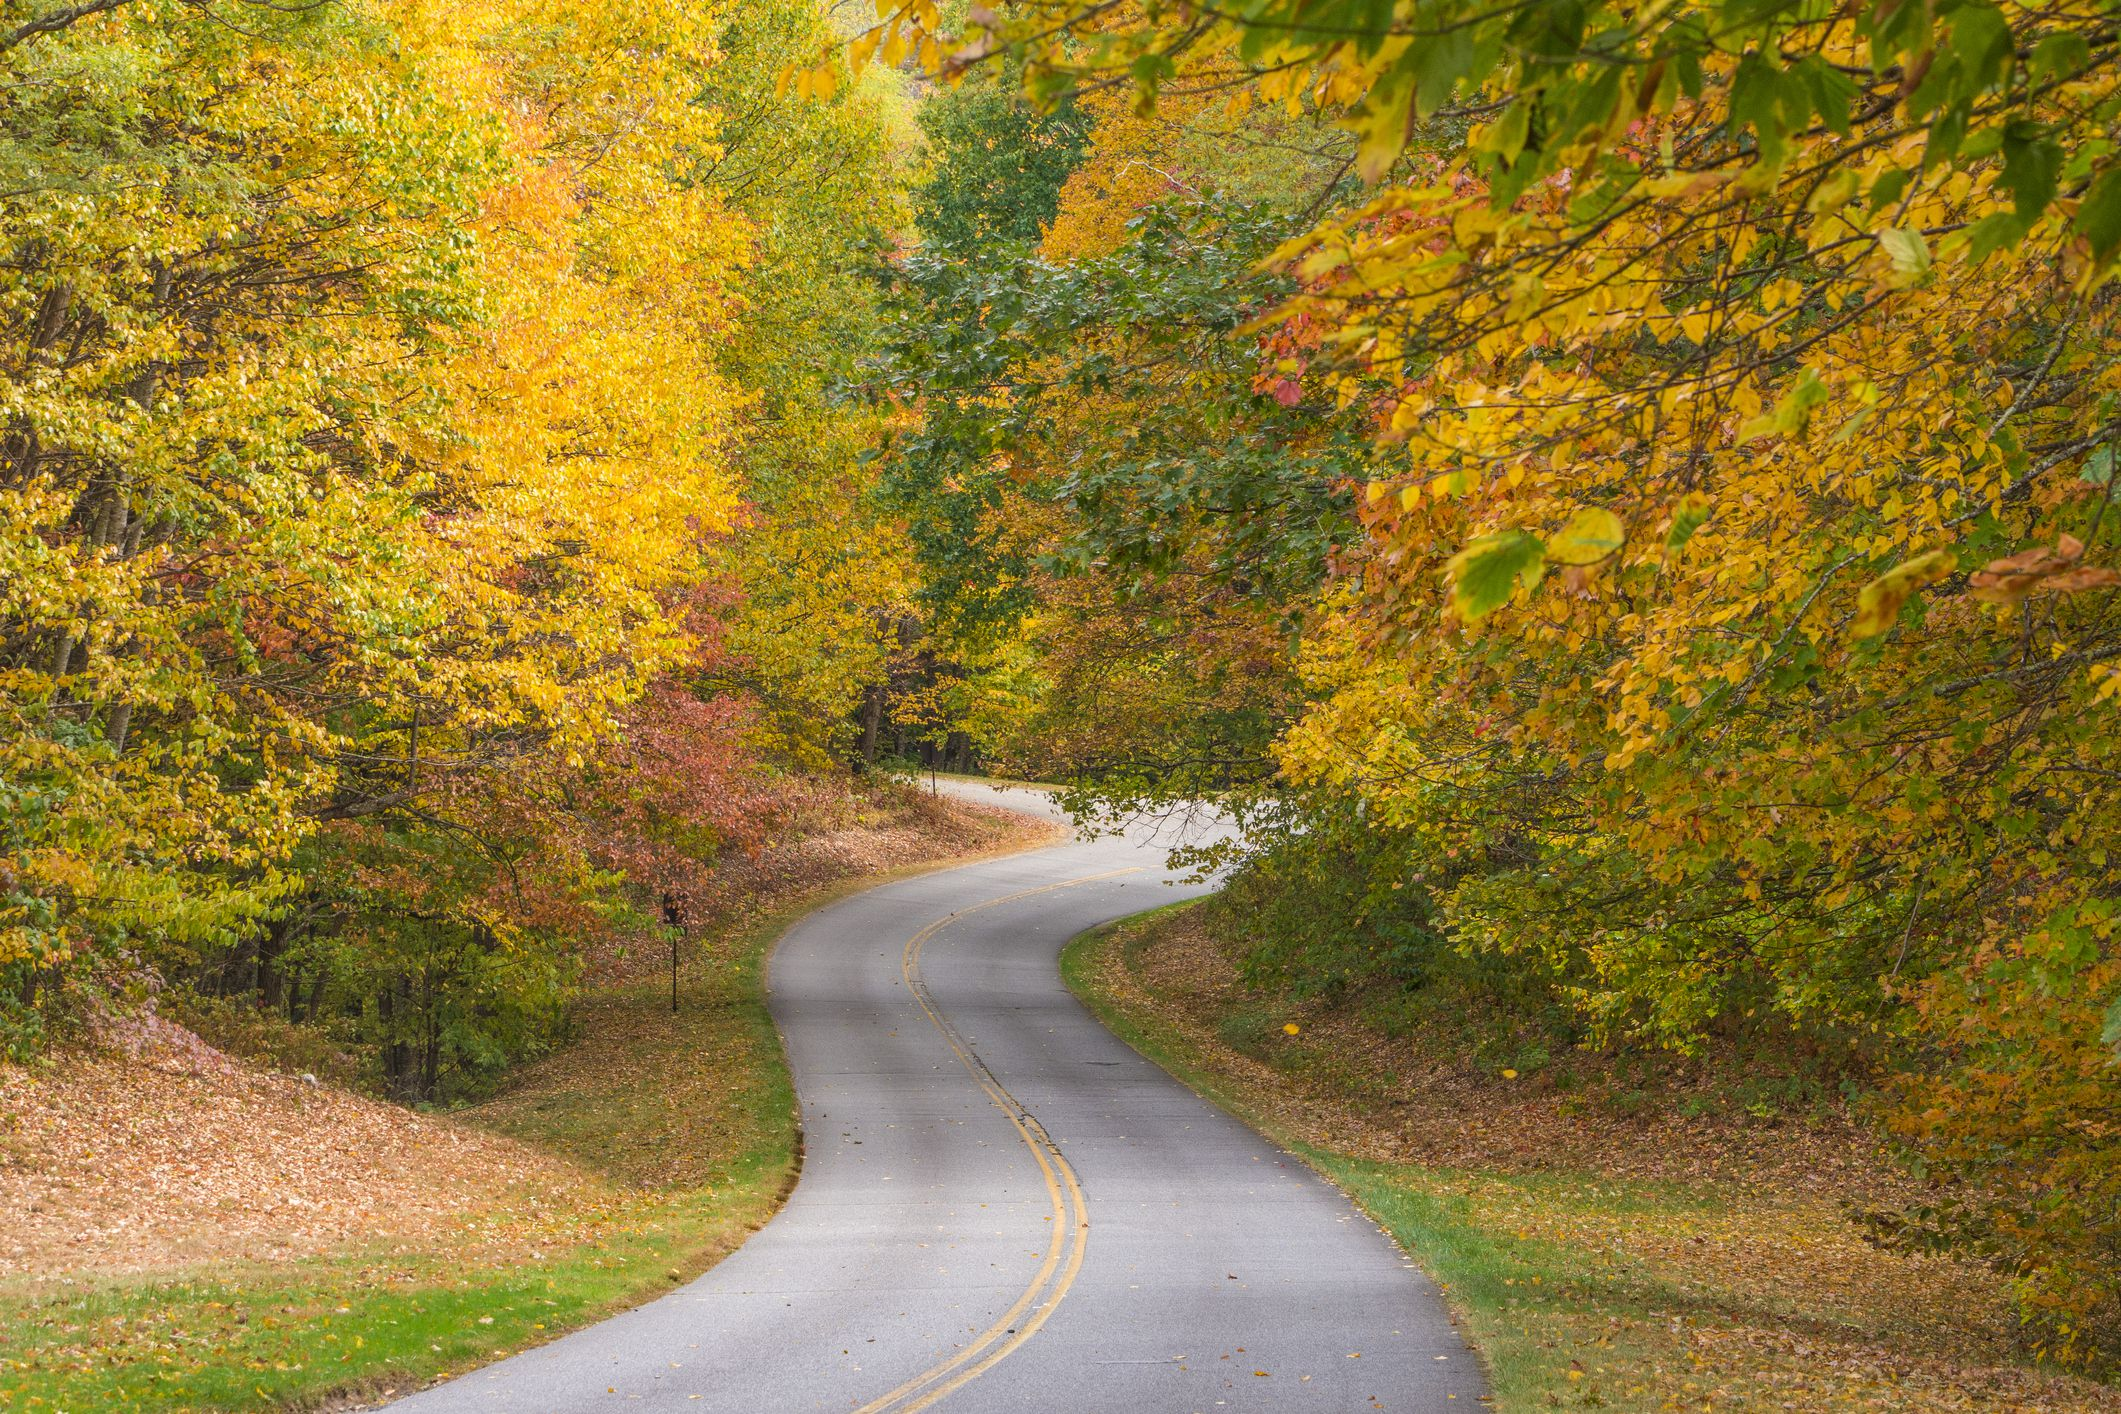 Autumn Country Road in Tennesse during autumn